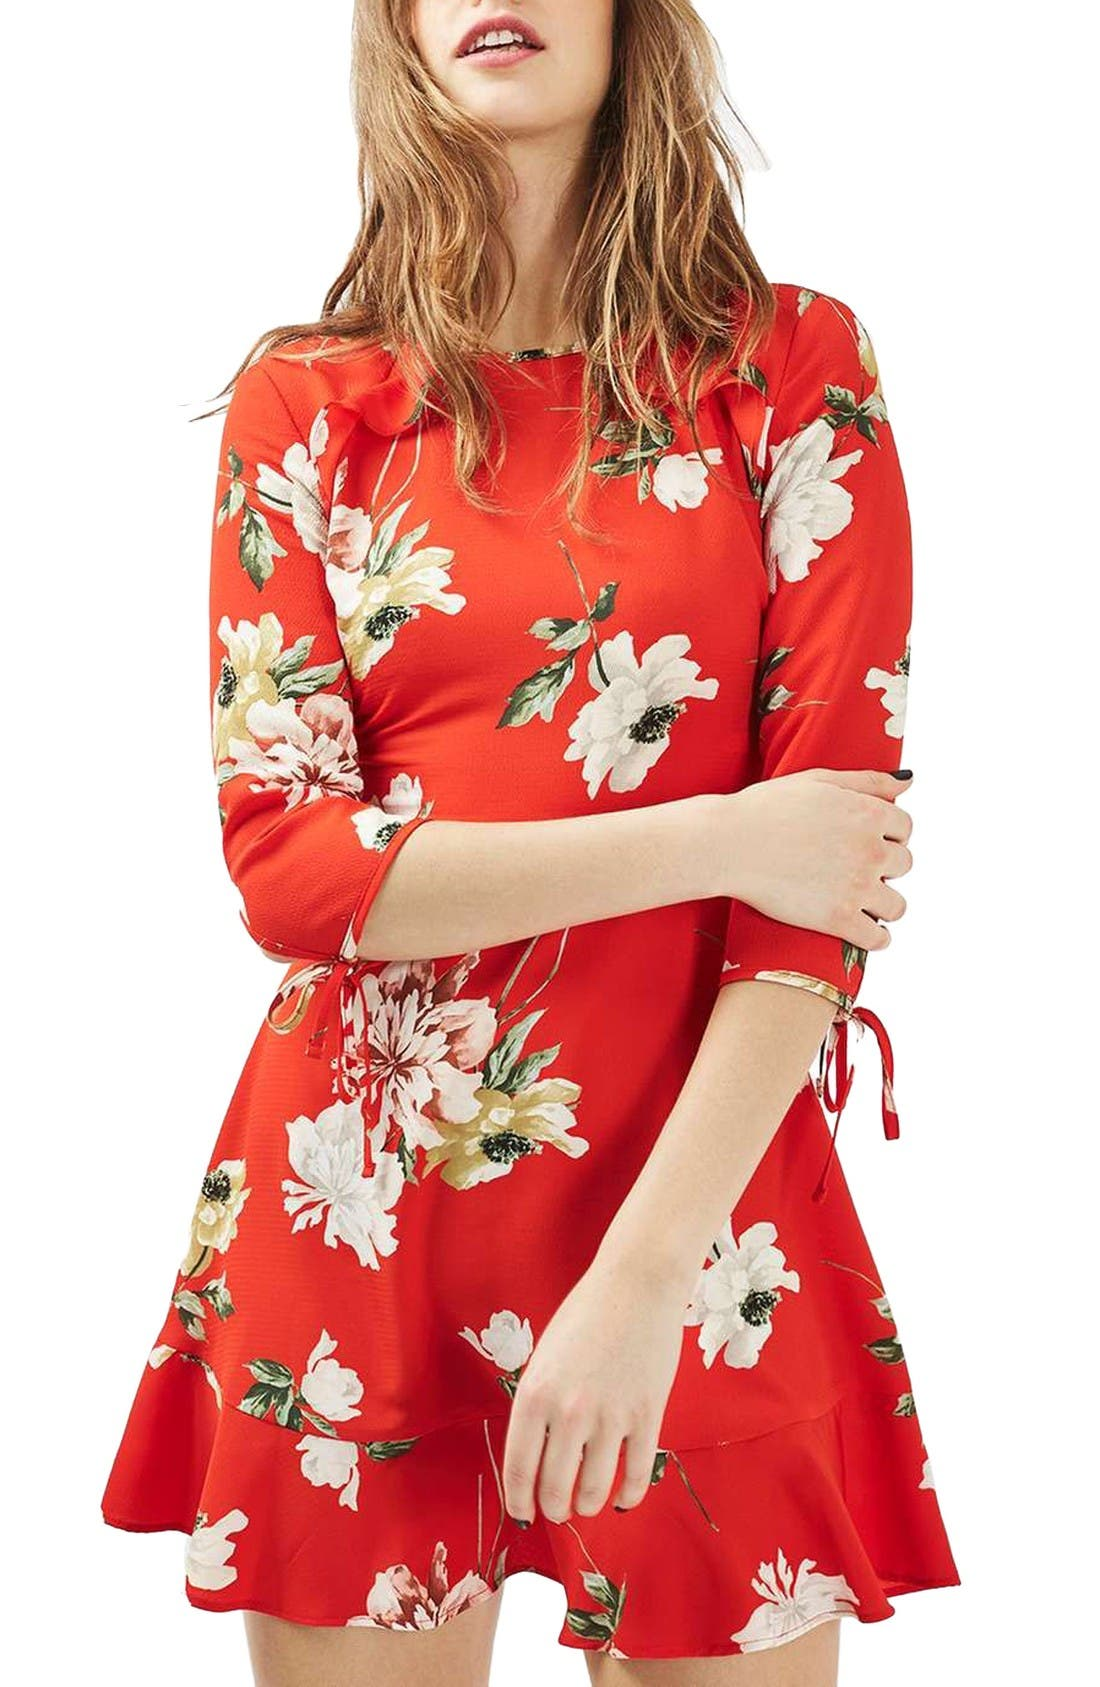 Alternate Image 1 Selected - Topshop Ruffle Floral Tea Dress (Regular & Petite)